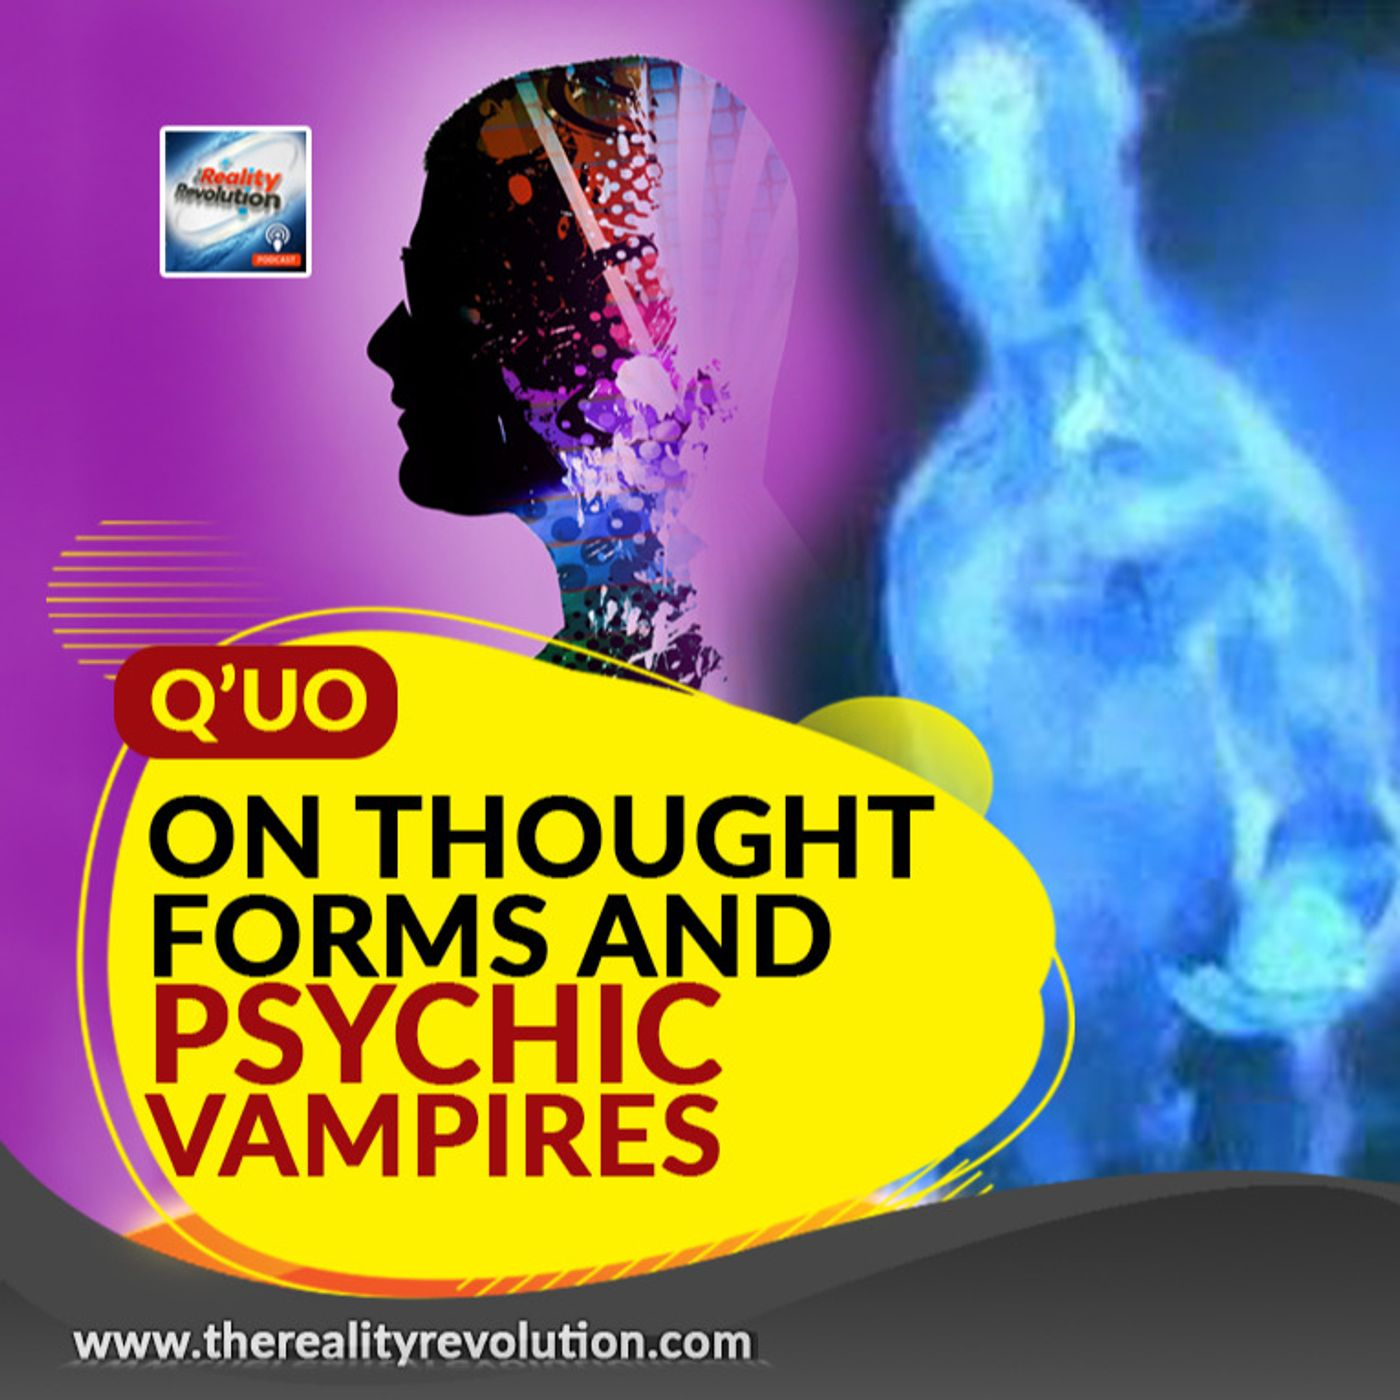 Q'uo On Thought Forms And Psychic Vampires